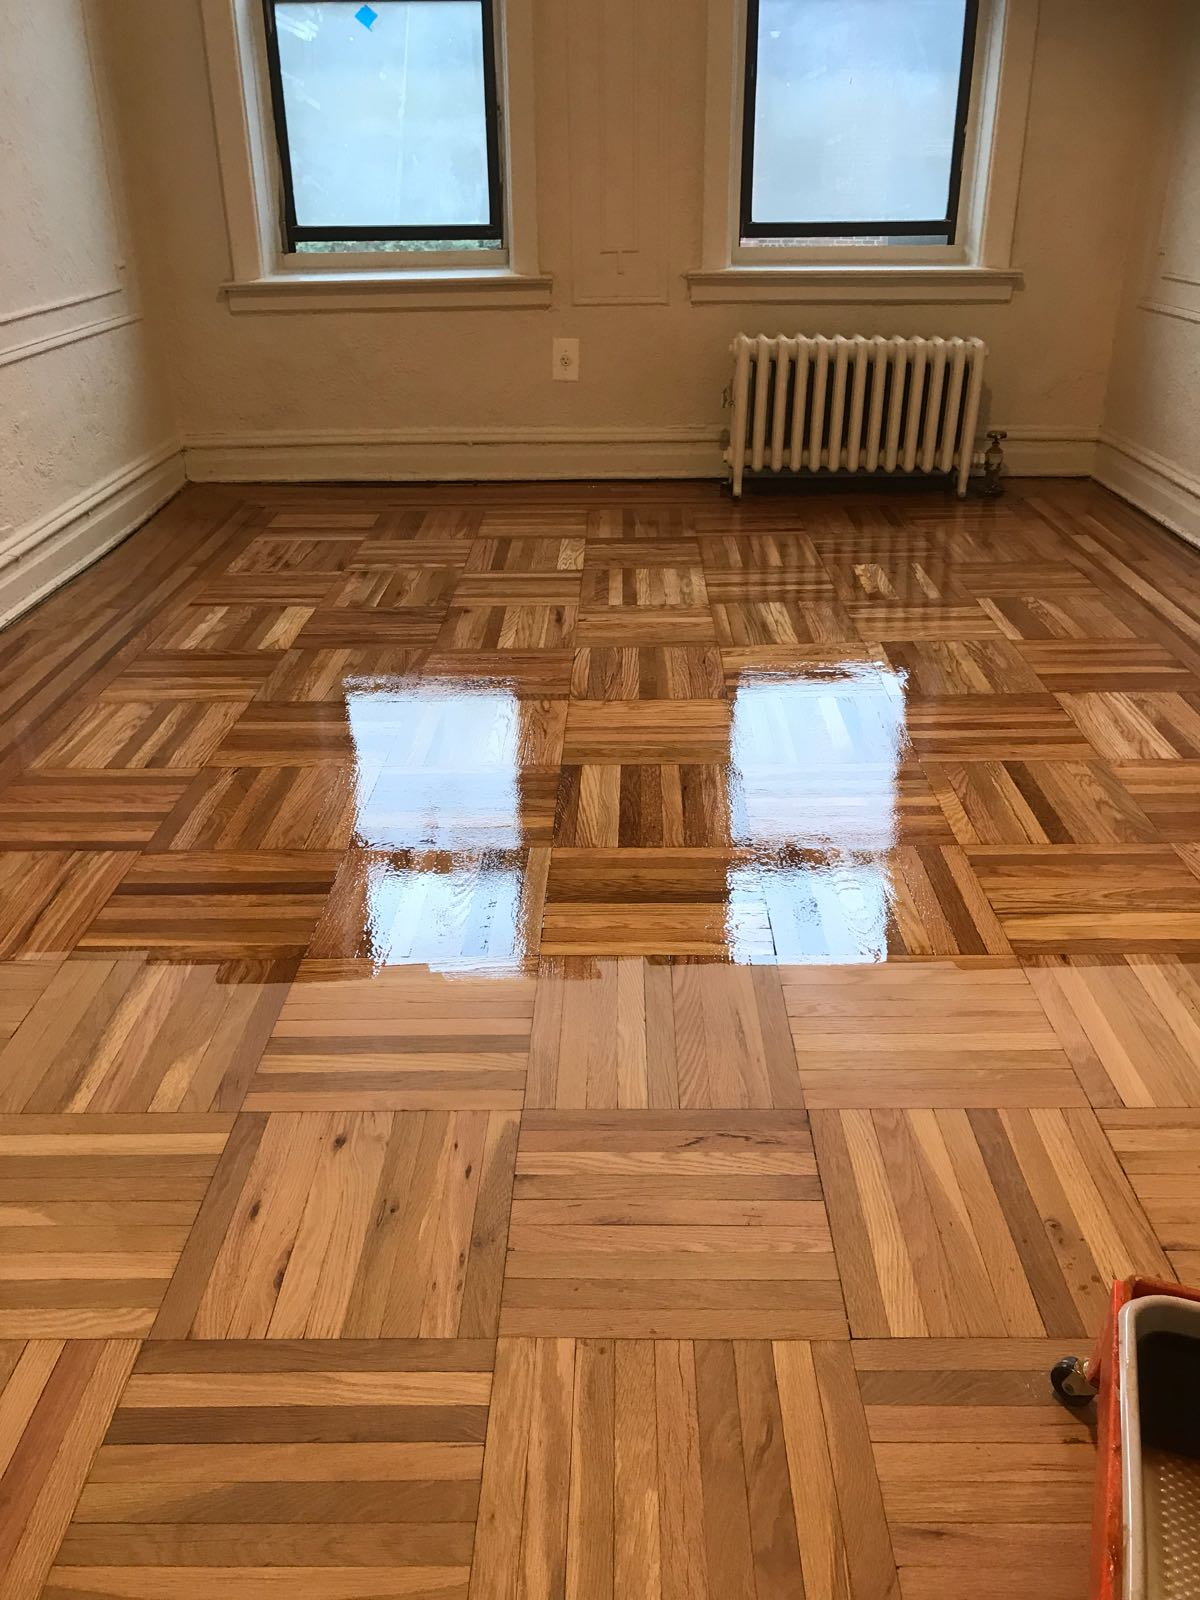 wood digital niagarahardwoodflooring olympus hardwood floor floors niagara refinish camera flooring refinishing